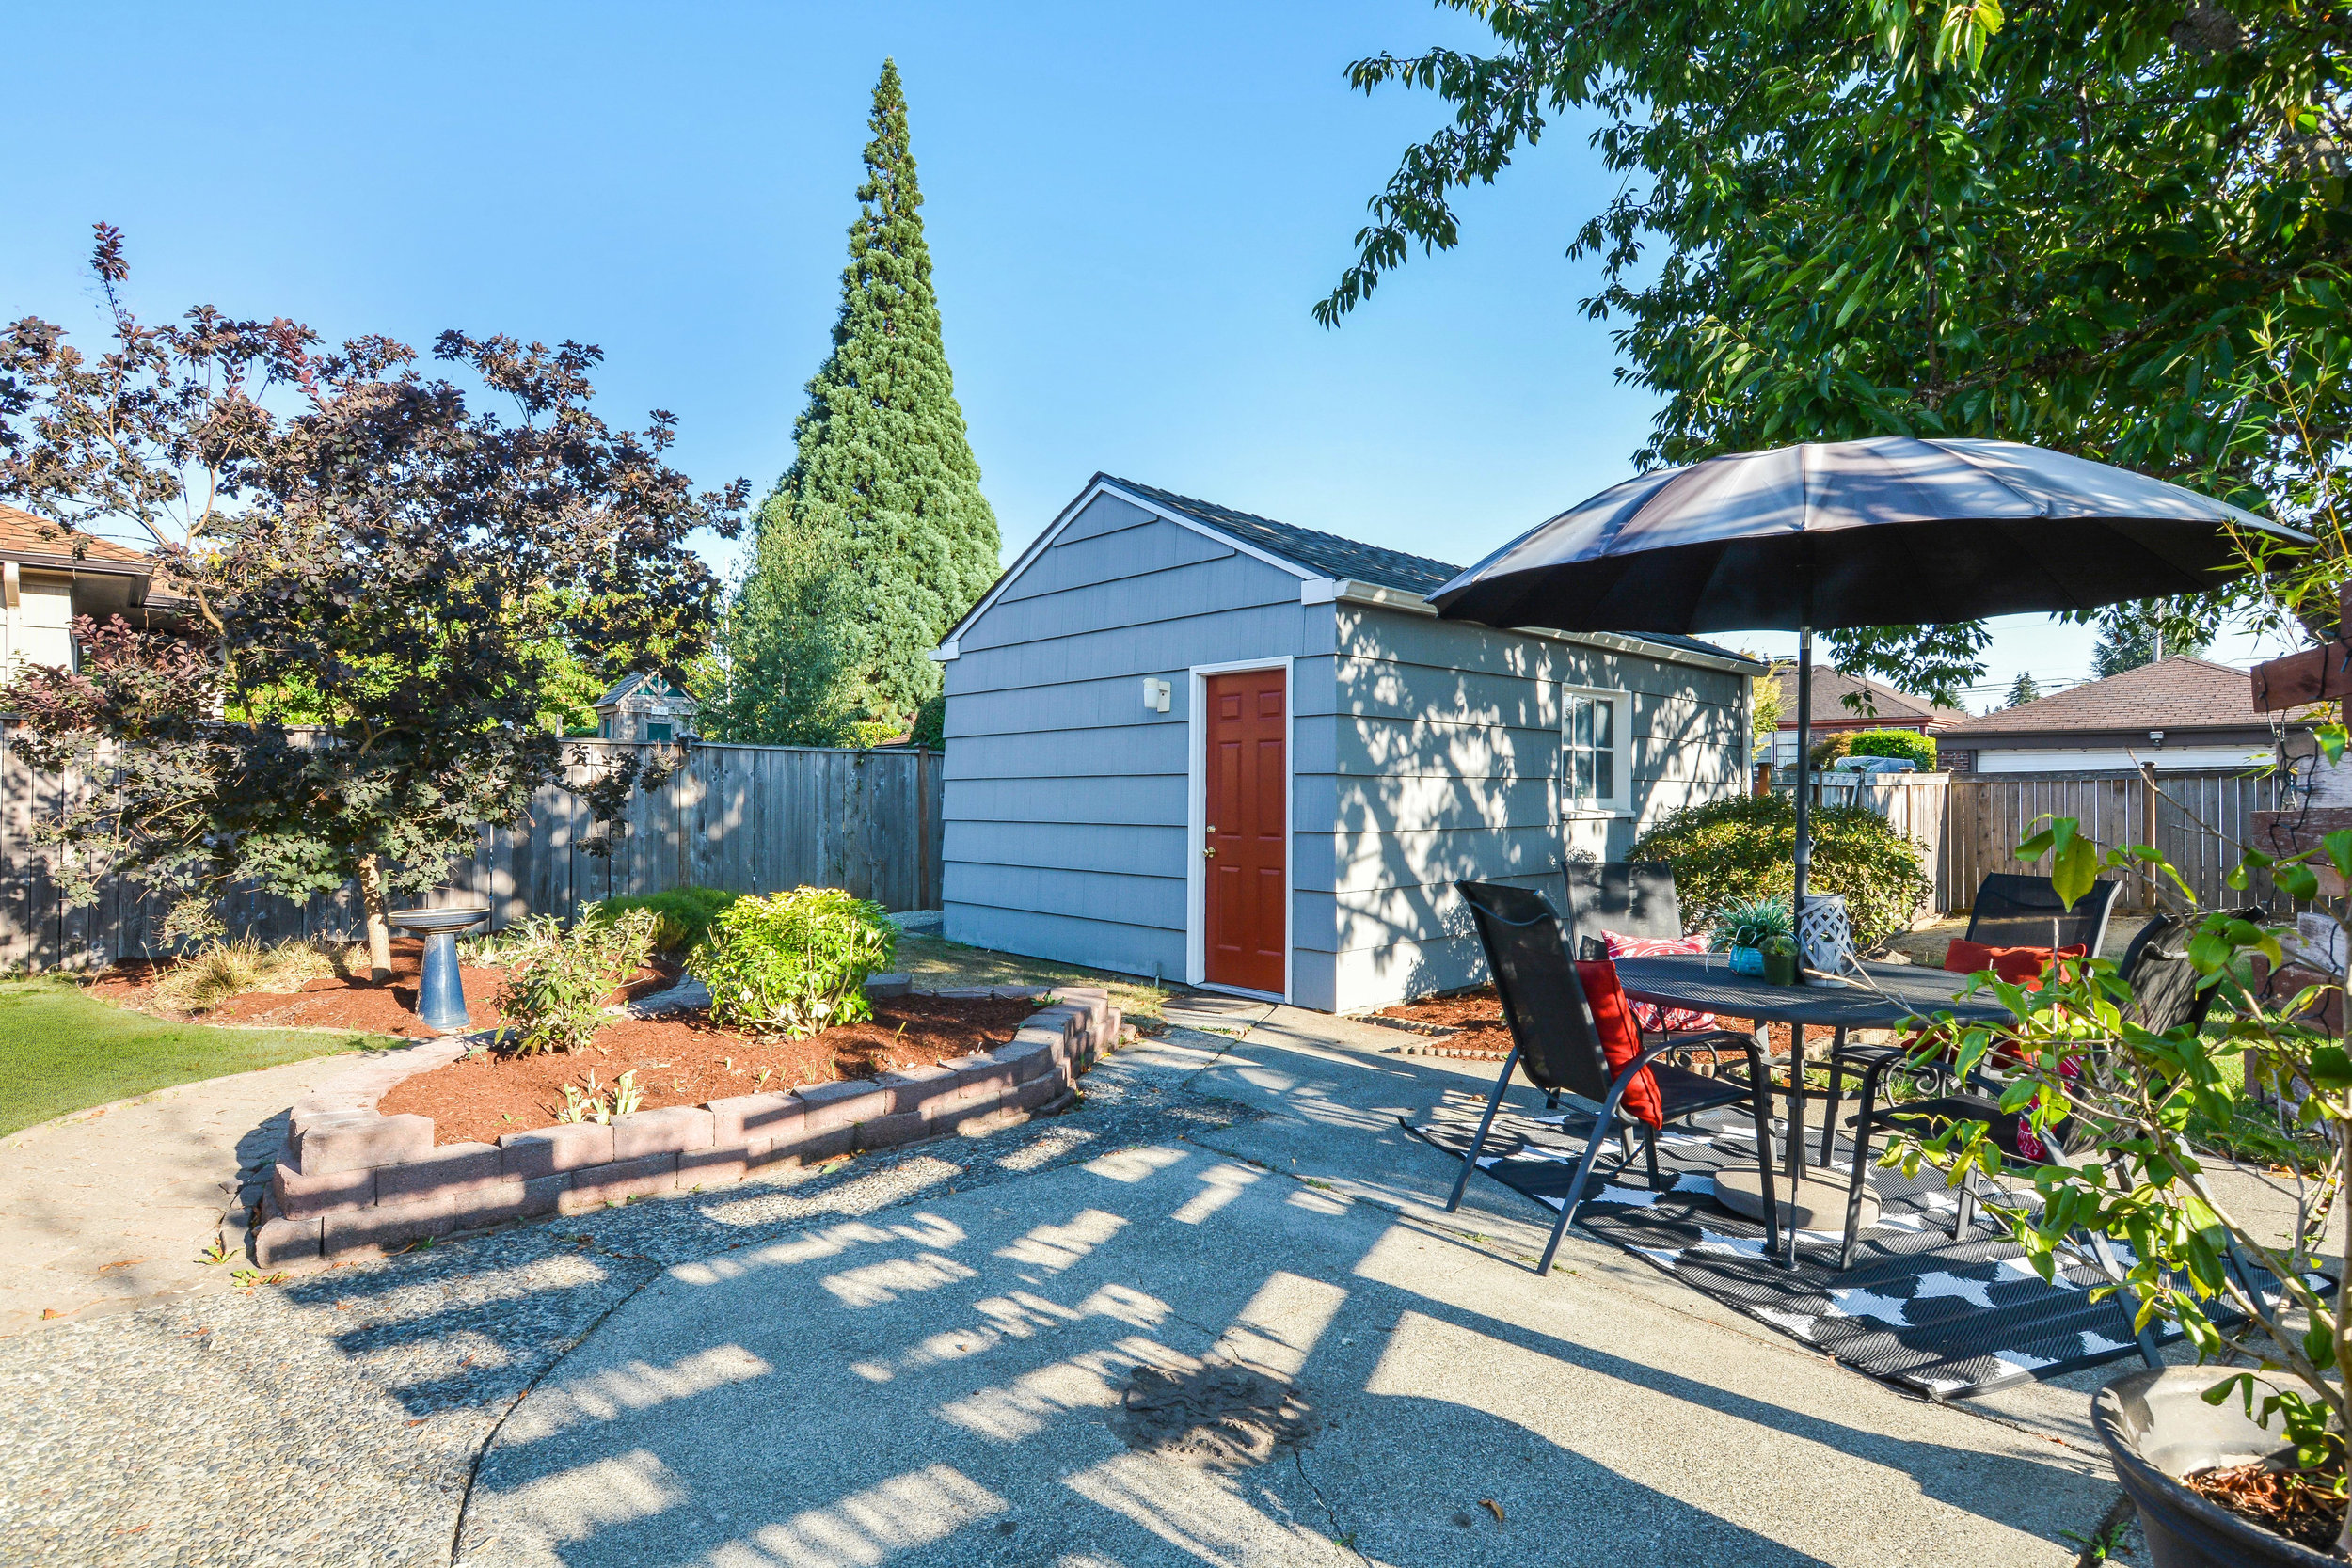 A view of the fully fenced and beautifully landscaped back yard with its patio, paved pathways, fruiting cherry tree, lawn space, smoke tree, and detached garage on the paved alley.